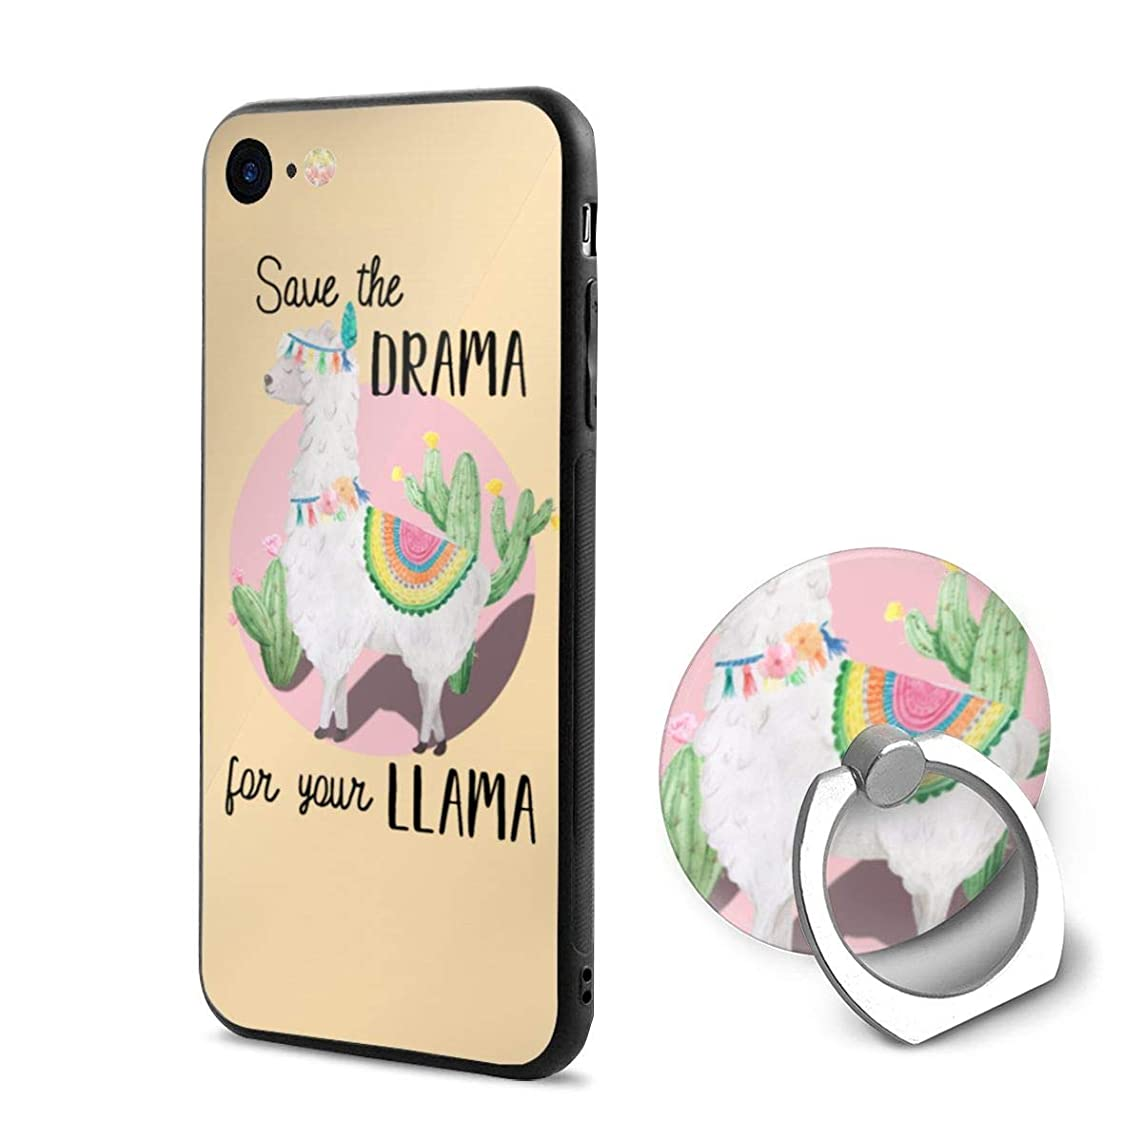 Save The Drama for Your Llama PC iPhone 6/iPhone 6s Phone Case Protective 3D Slim Back Cover 4.7 Inch Ultra Thin & Light Soft Touch Feeling Flexible Anti-Scratch for iPhone 6/6s